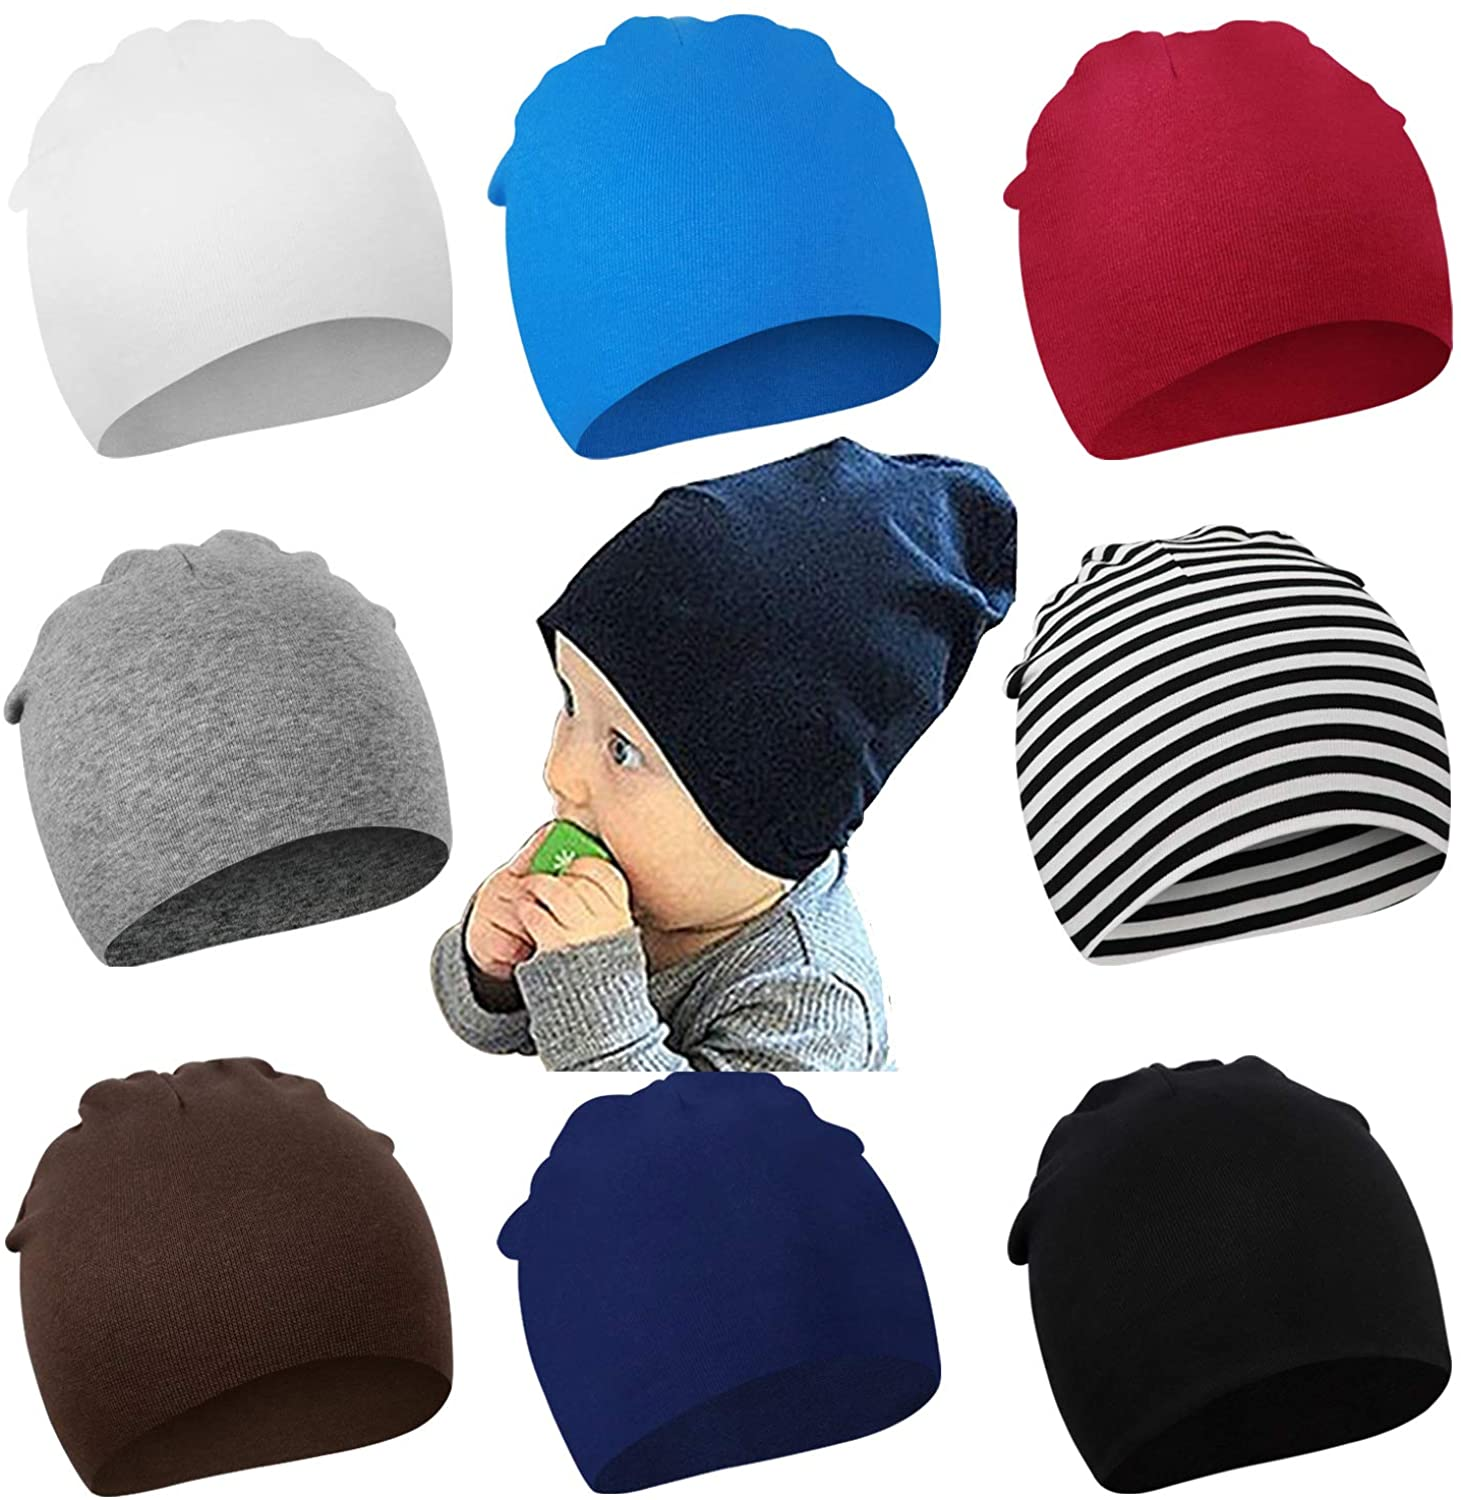 DRESHOW 8 Pieces Baby Beanie Newborn Toddler Soft Cute Knit Hat Hospital Hats for Baby Boys Infant Cap Beanies